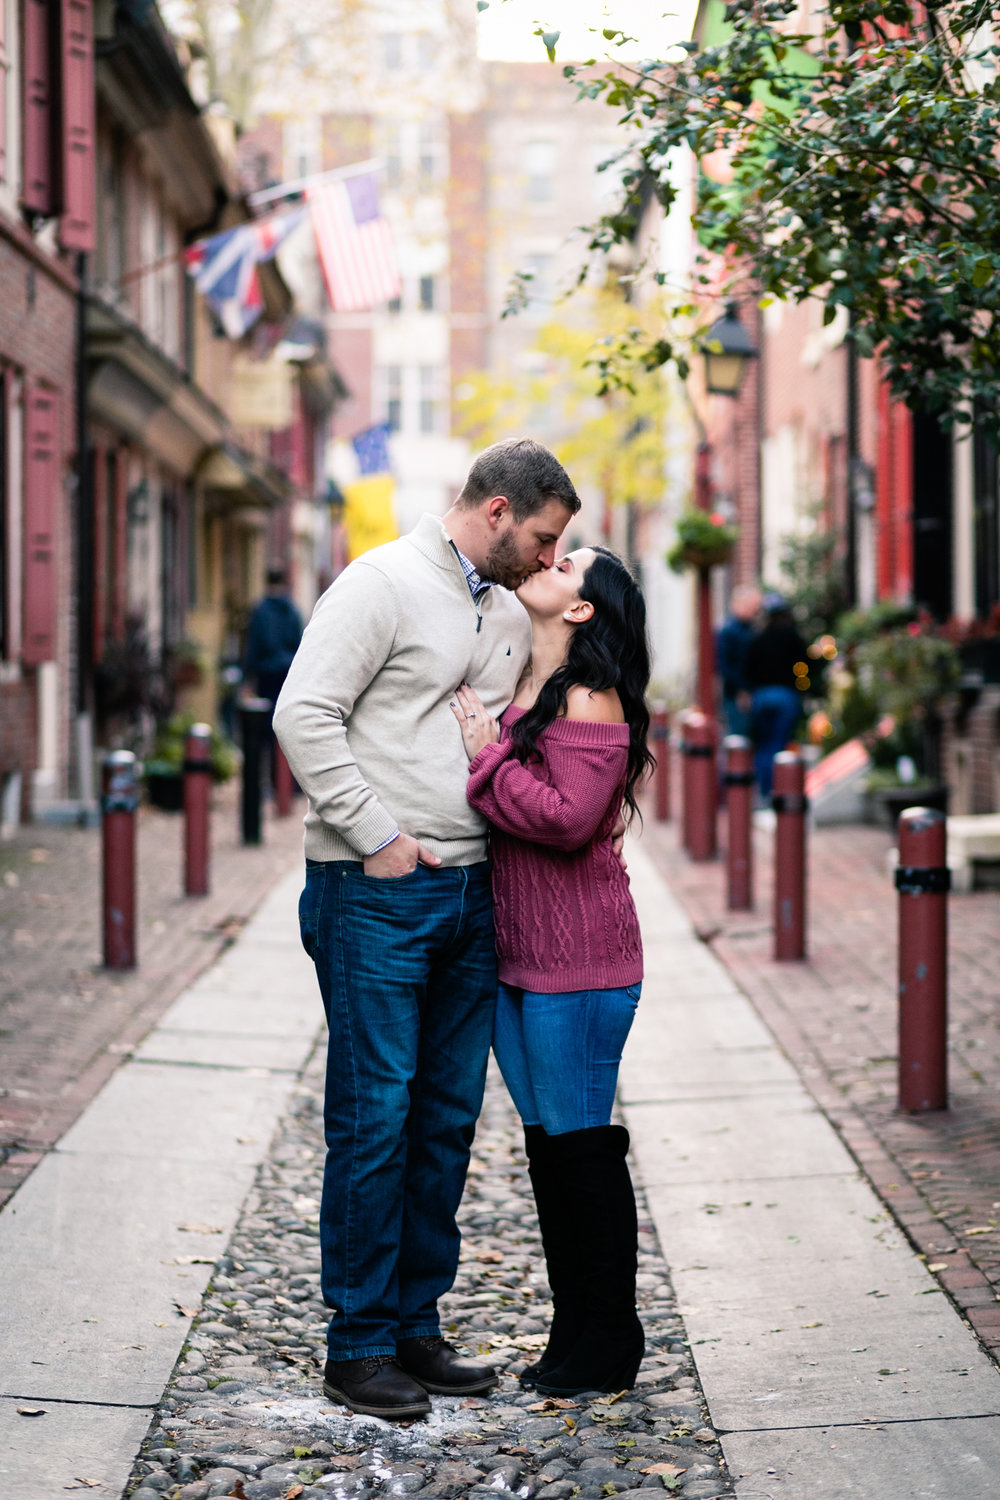 Philadelphia Old City Engagement Photography - Lovestruck Pictures-020.jpg